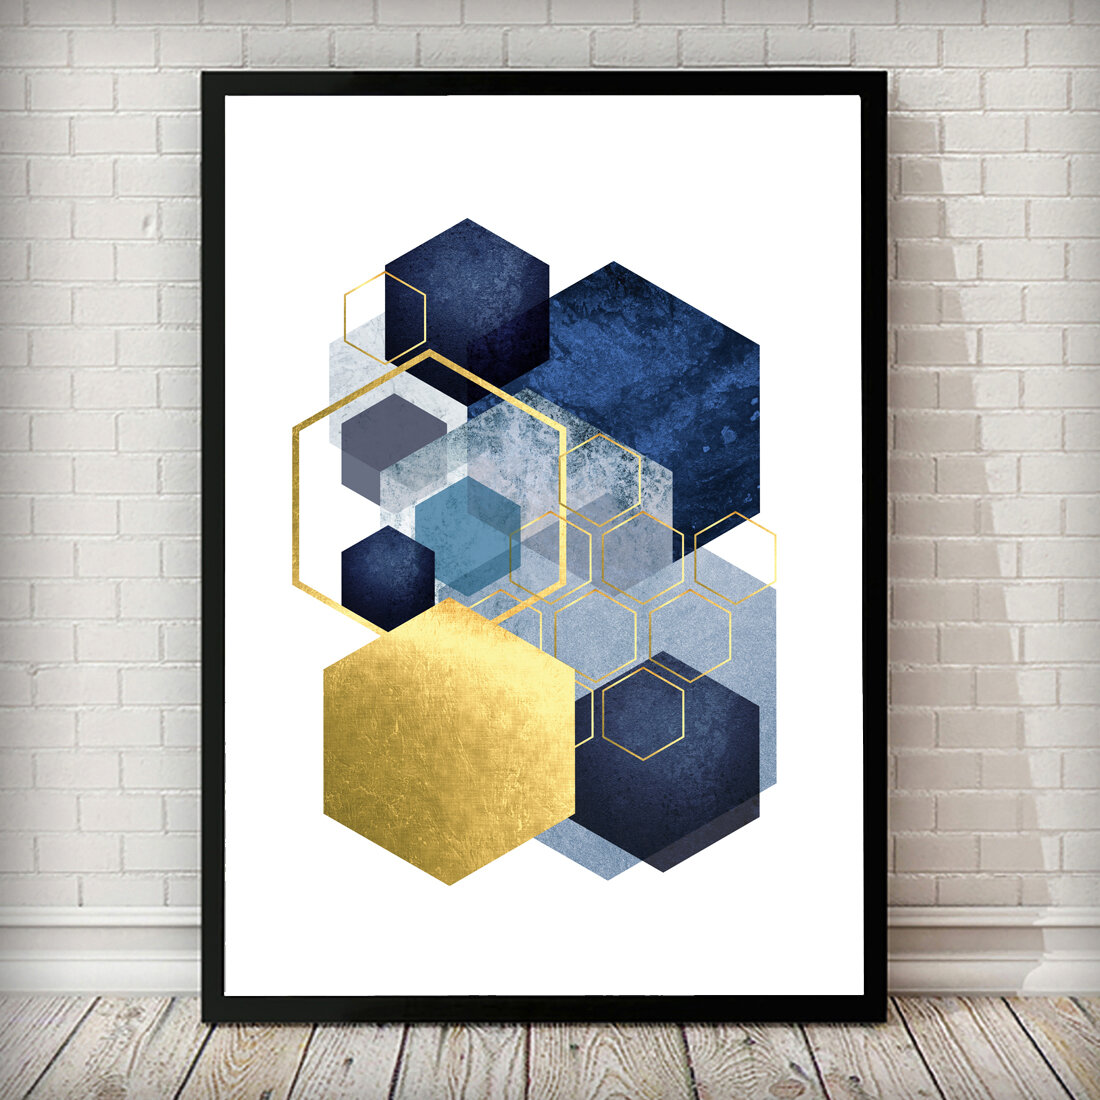 East Urban Home Geometric Hexagon Navy Gold Grey Abstract Picture Frame Print On Paper Reviews Wayfair Co Uk